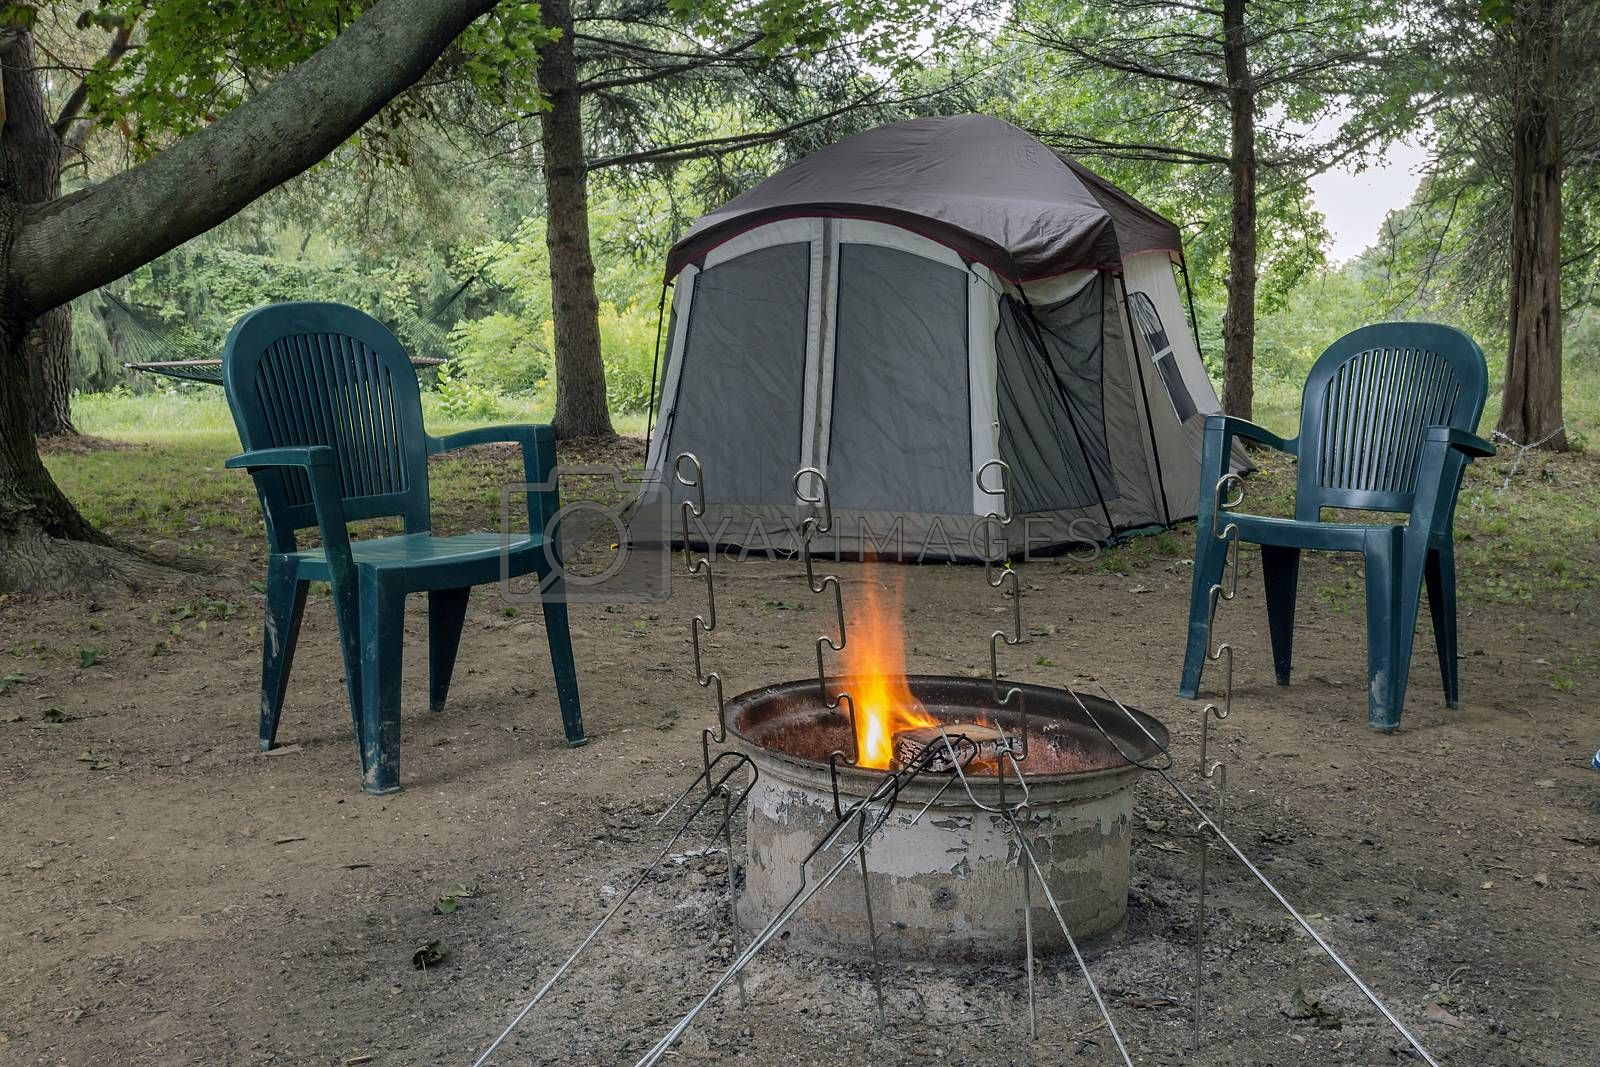 Pitched tent, crackling campfire, two chairs, and metal roasting sticks. All under a canopy of trees.